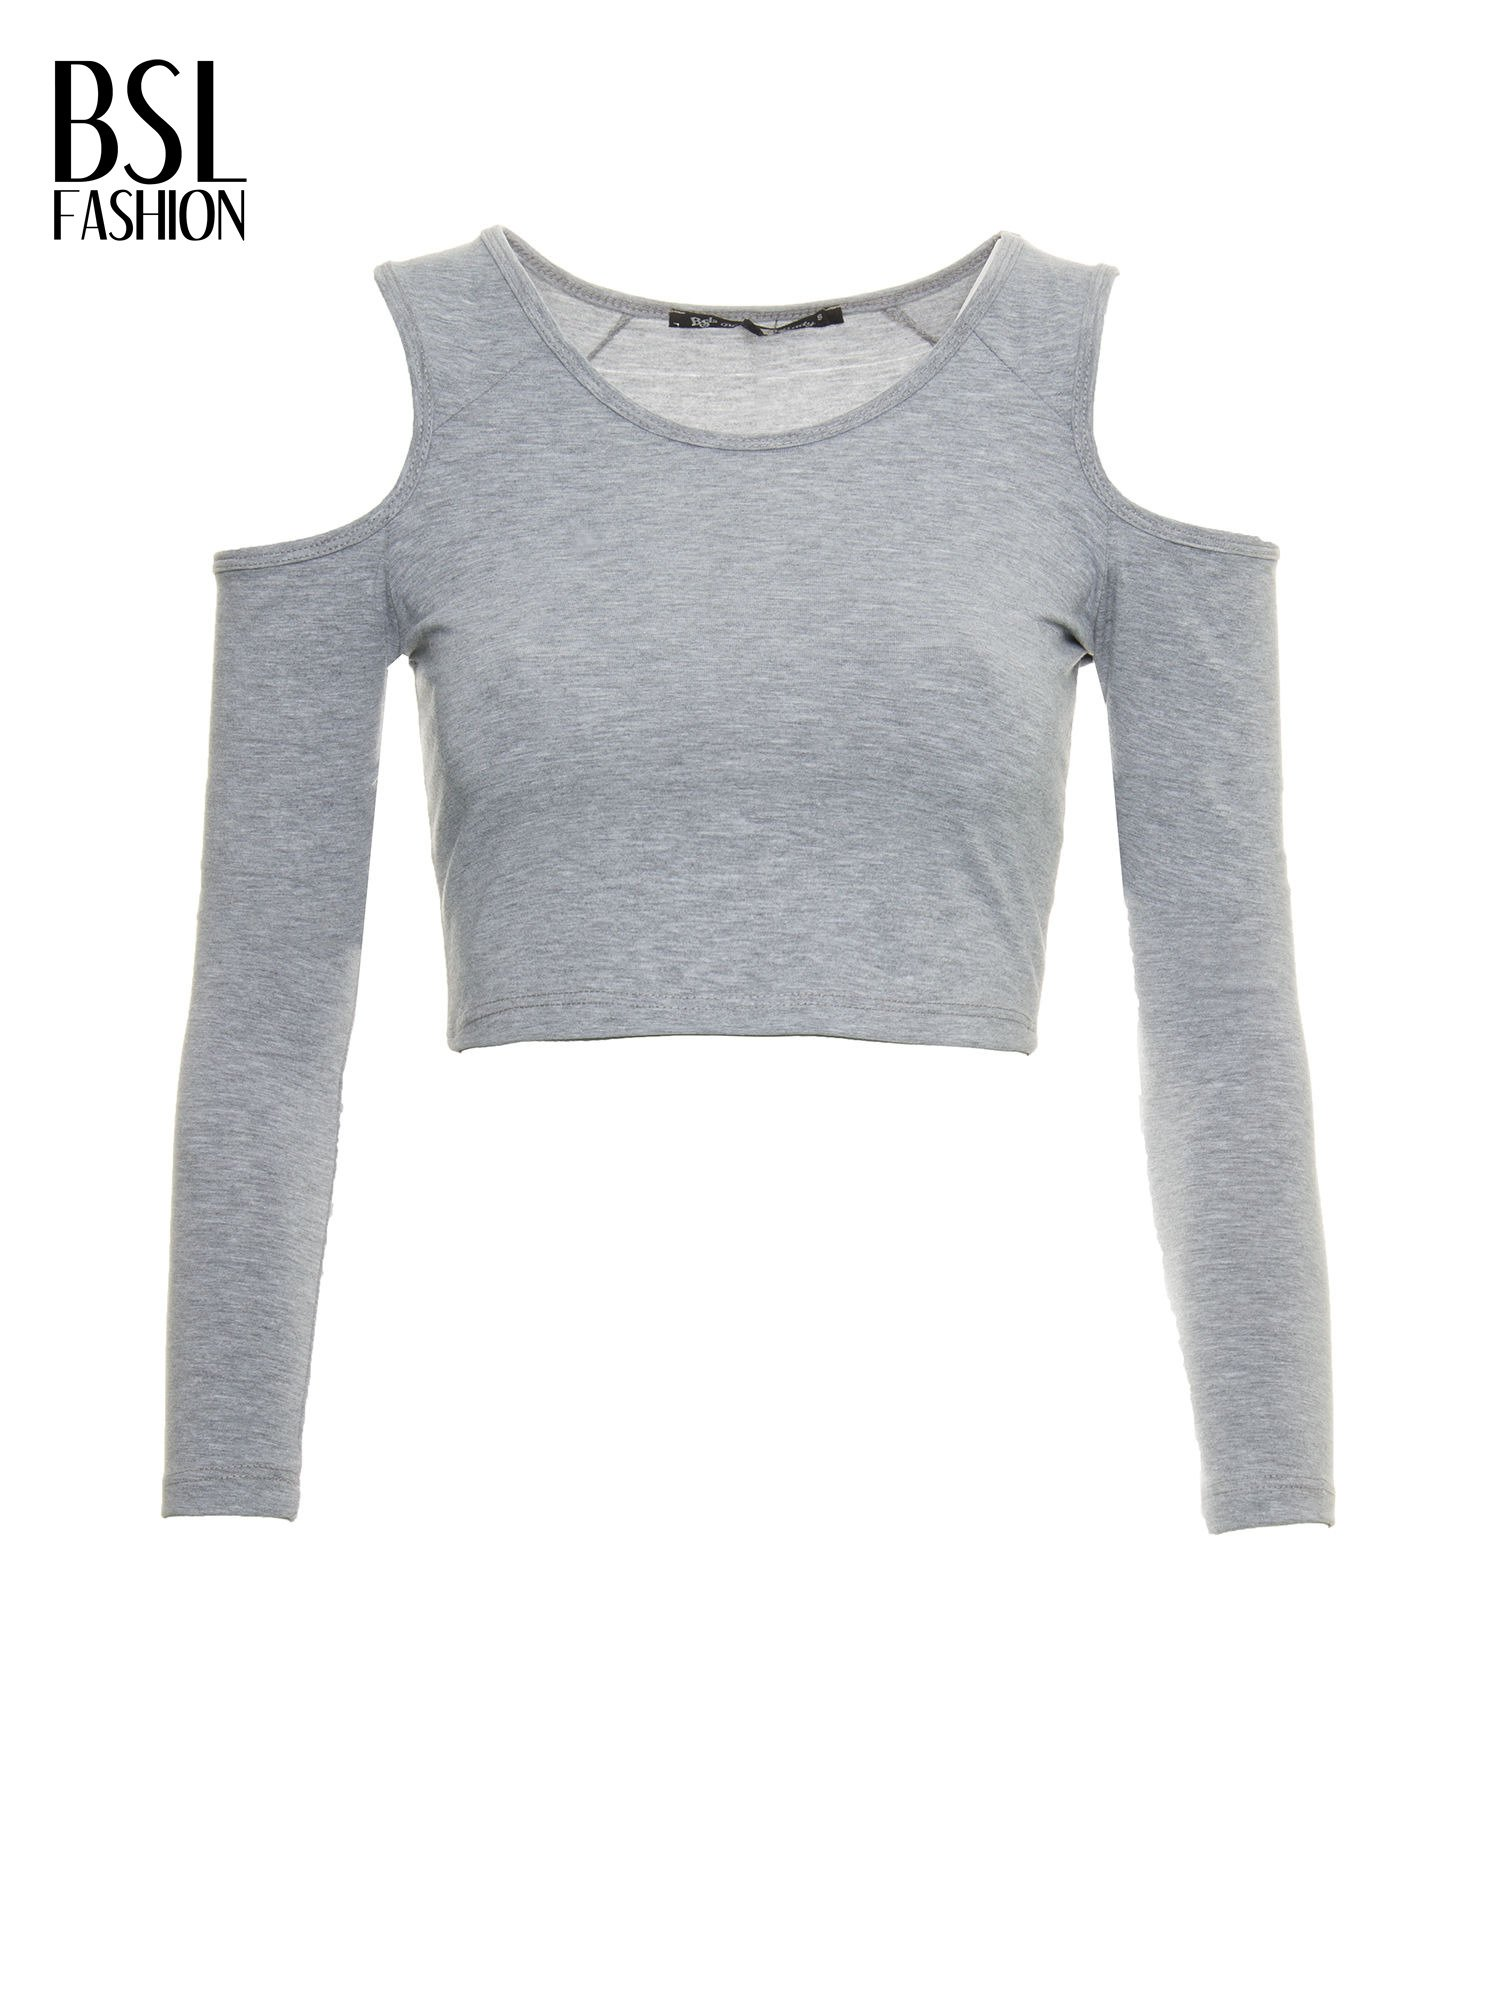 9af3e85cc13e99 Szary crop top z rękawami cut out - T-shirt top - sklep eButik.pl